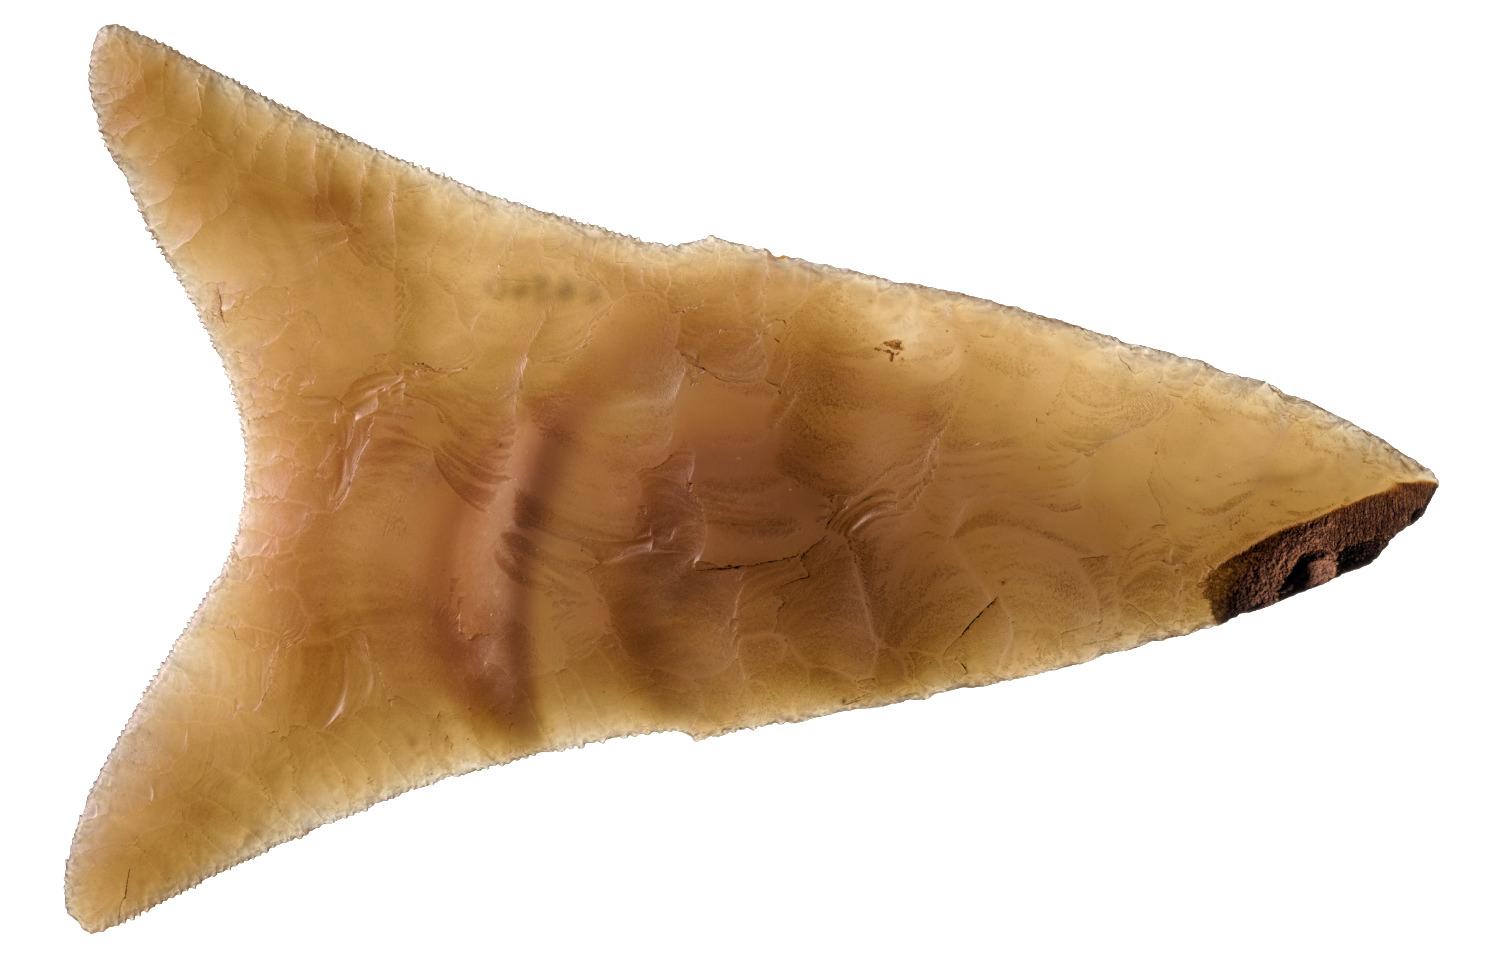 an ancient egyptian flint knife